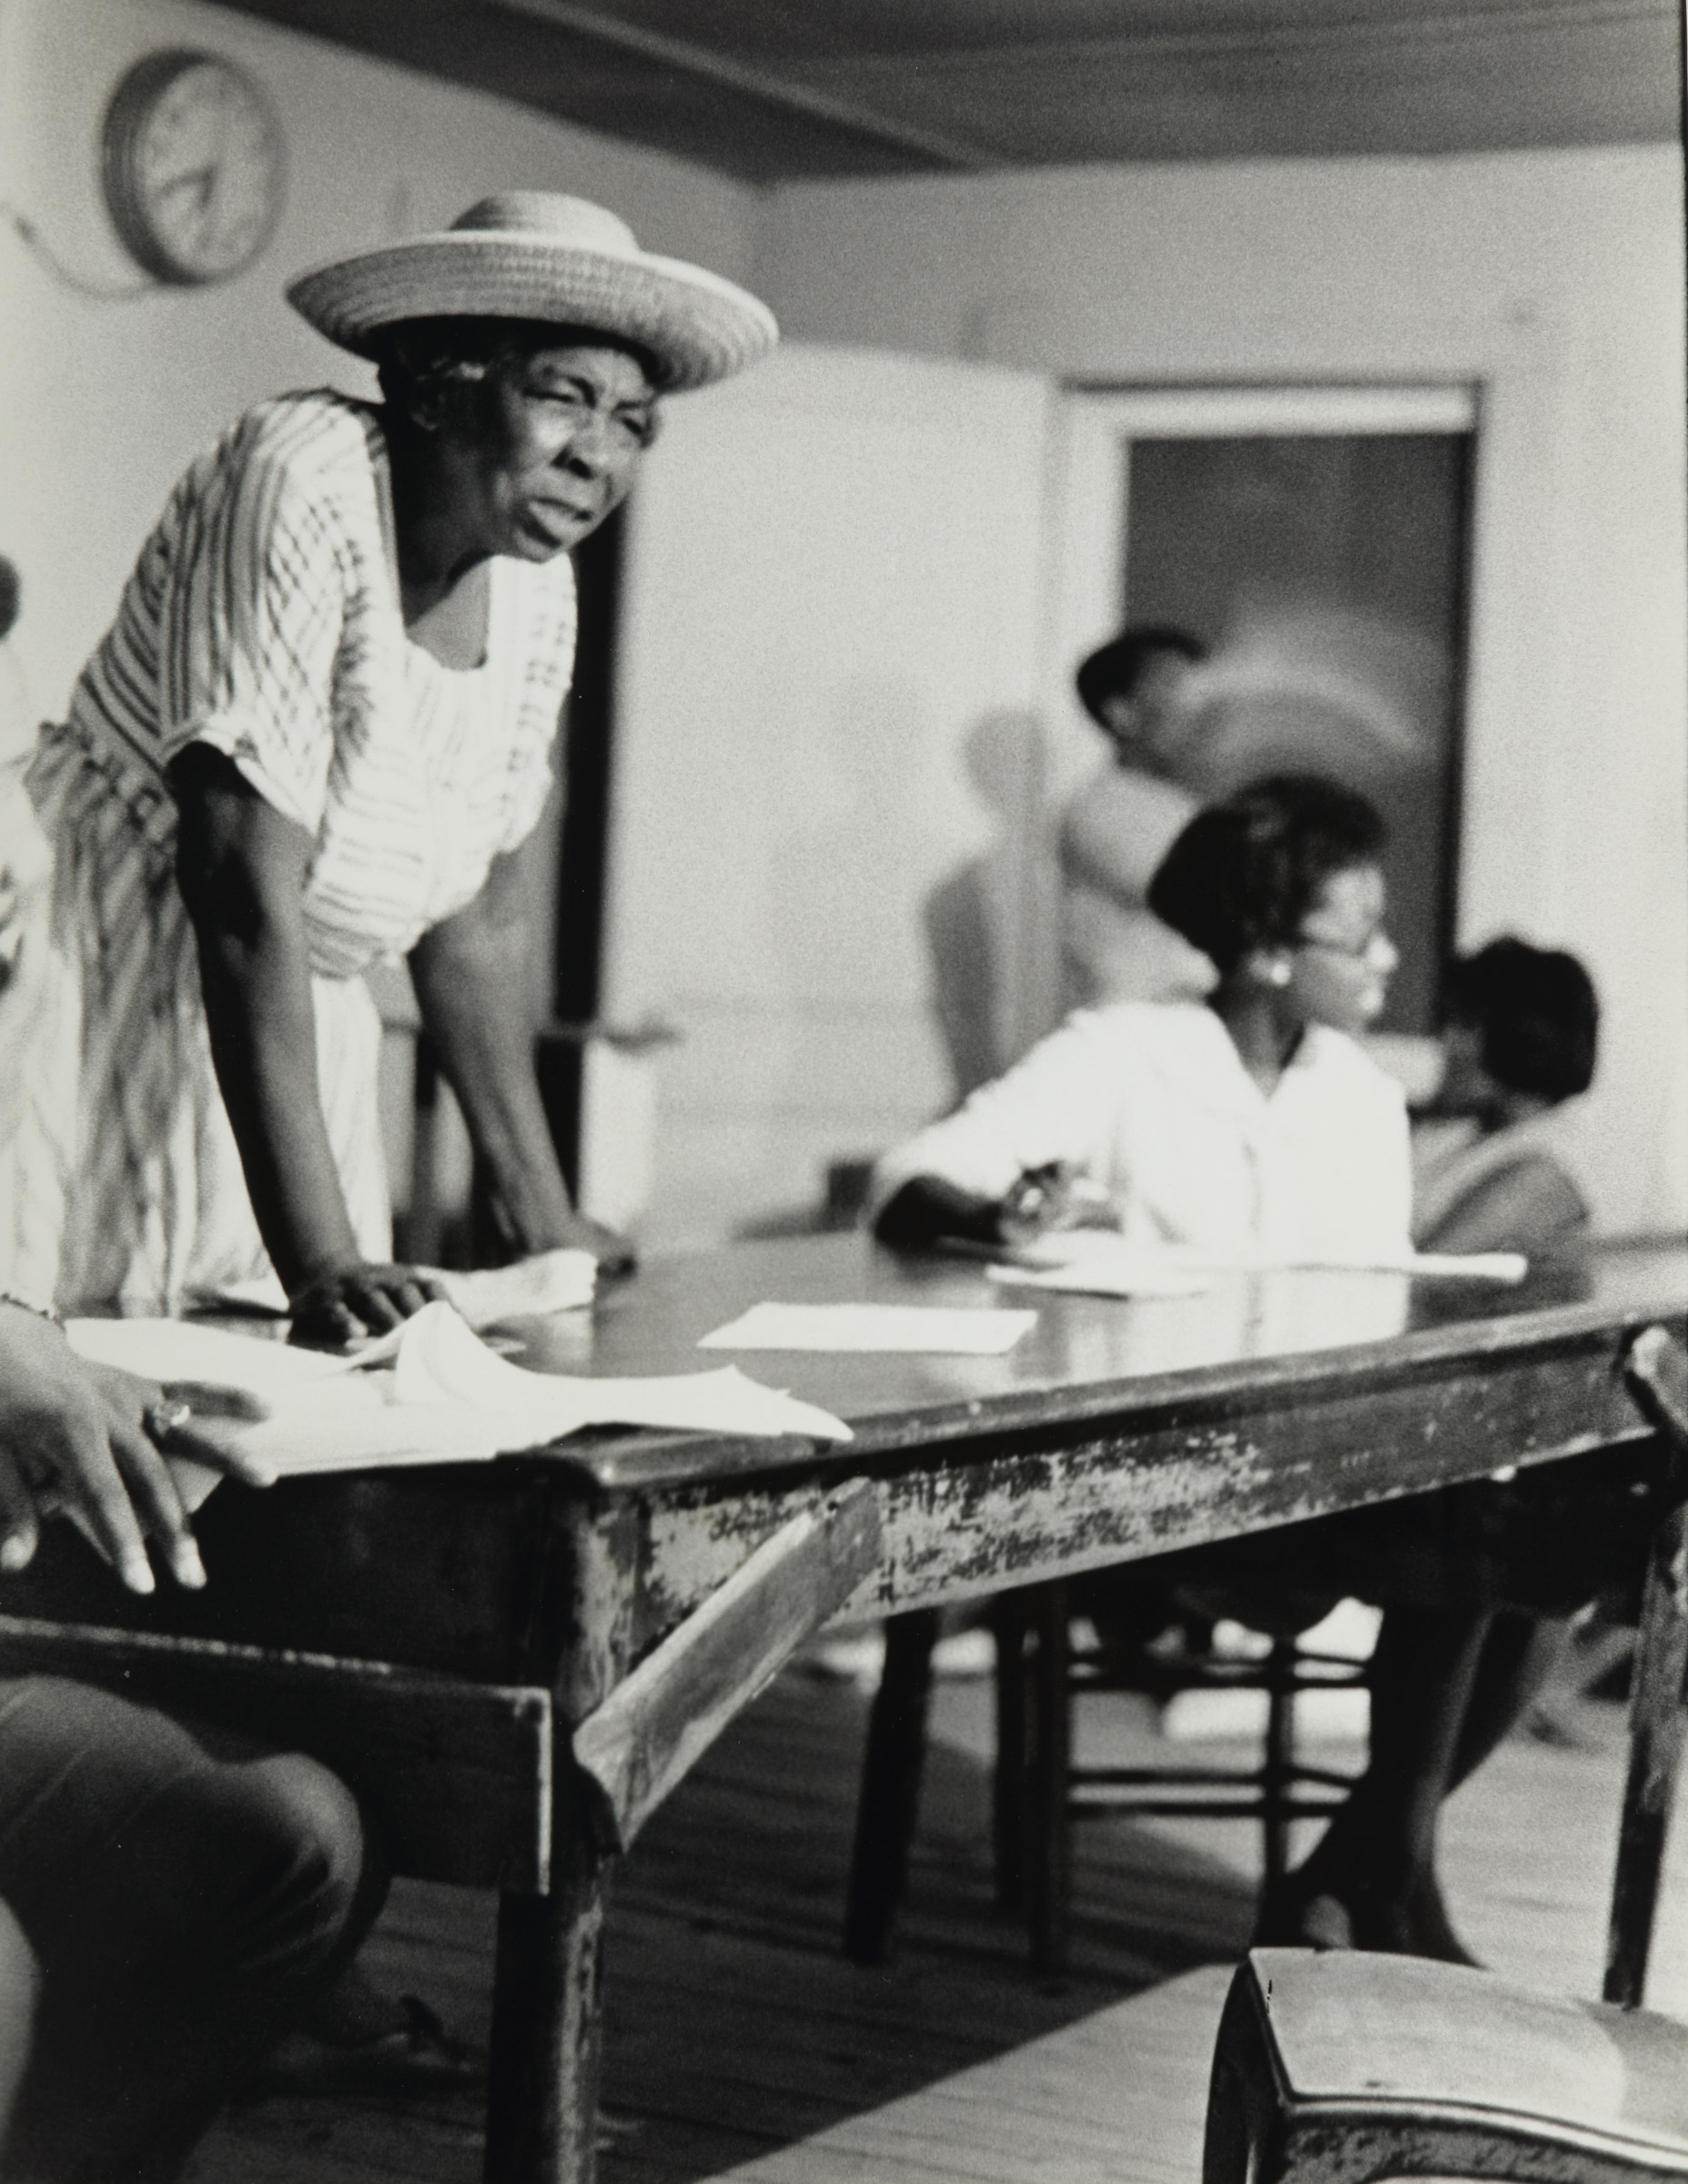 Doris Derby (American, born 1939), Grass Roots Organizer, Mississippi, 1968, gelatin silver print. High Museum of Art, Atlanta, purchase with funds from Jeff and Valerie Levy, 2007.188.